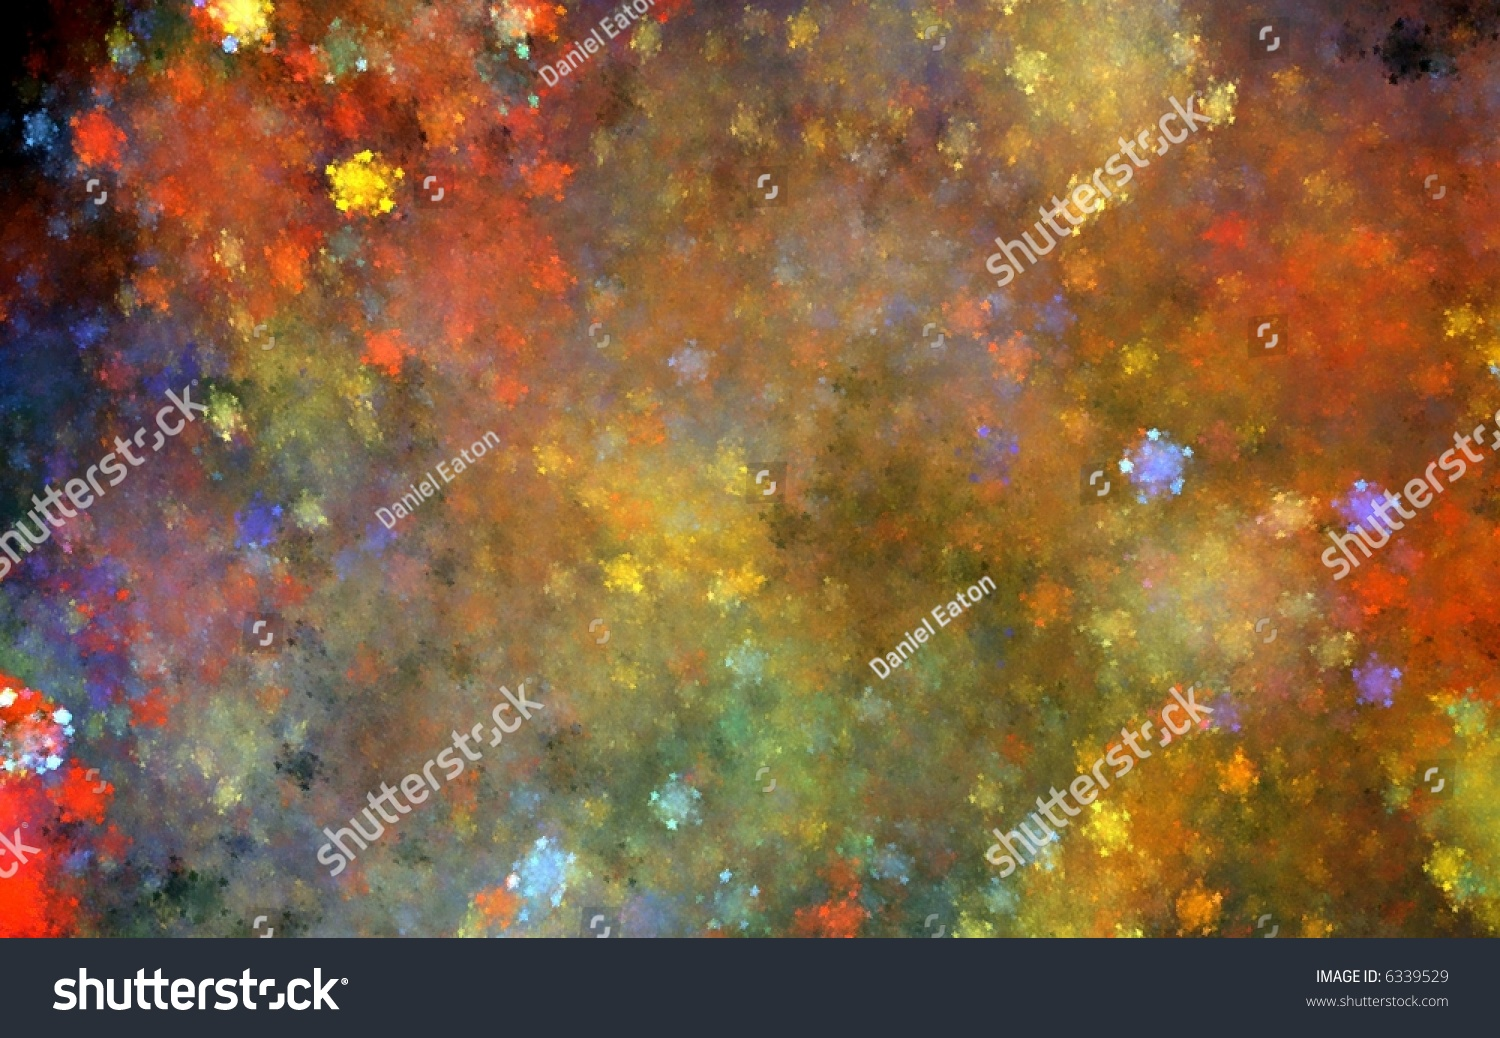 Multi-Colored Abstract Background Stock Photo 6339529 ...